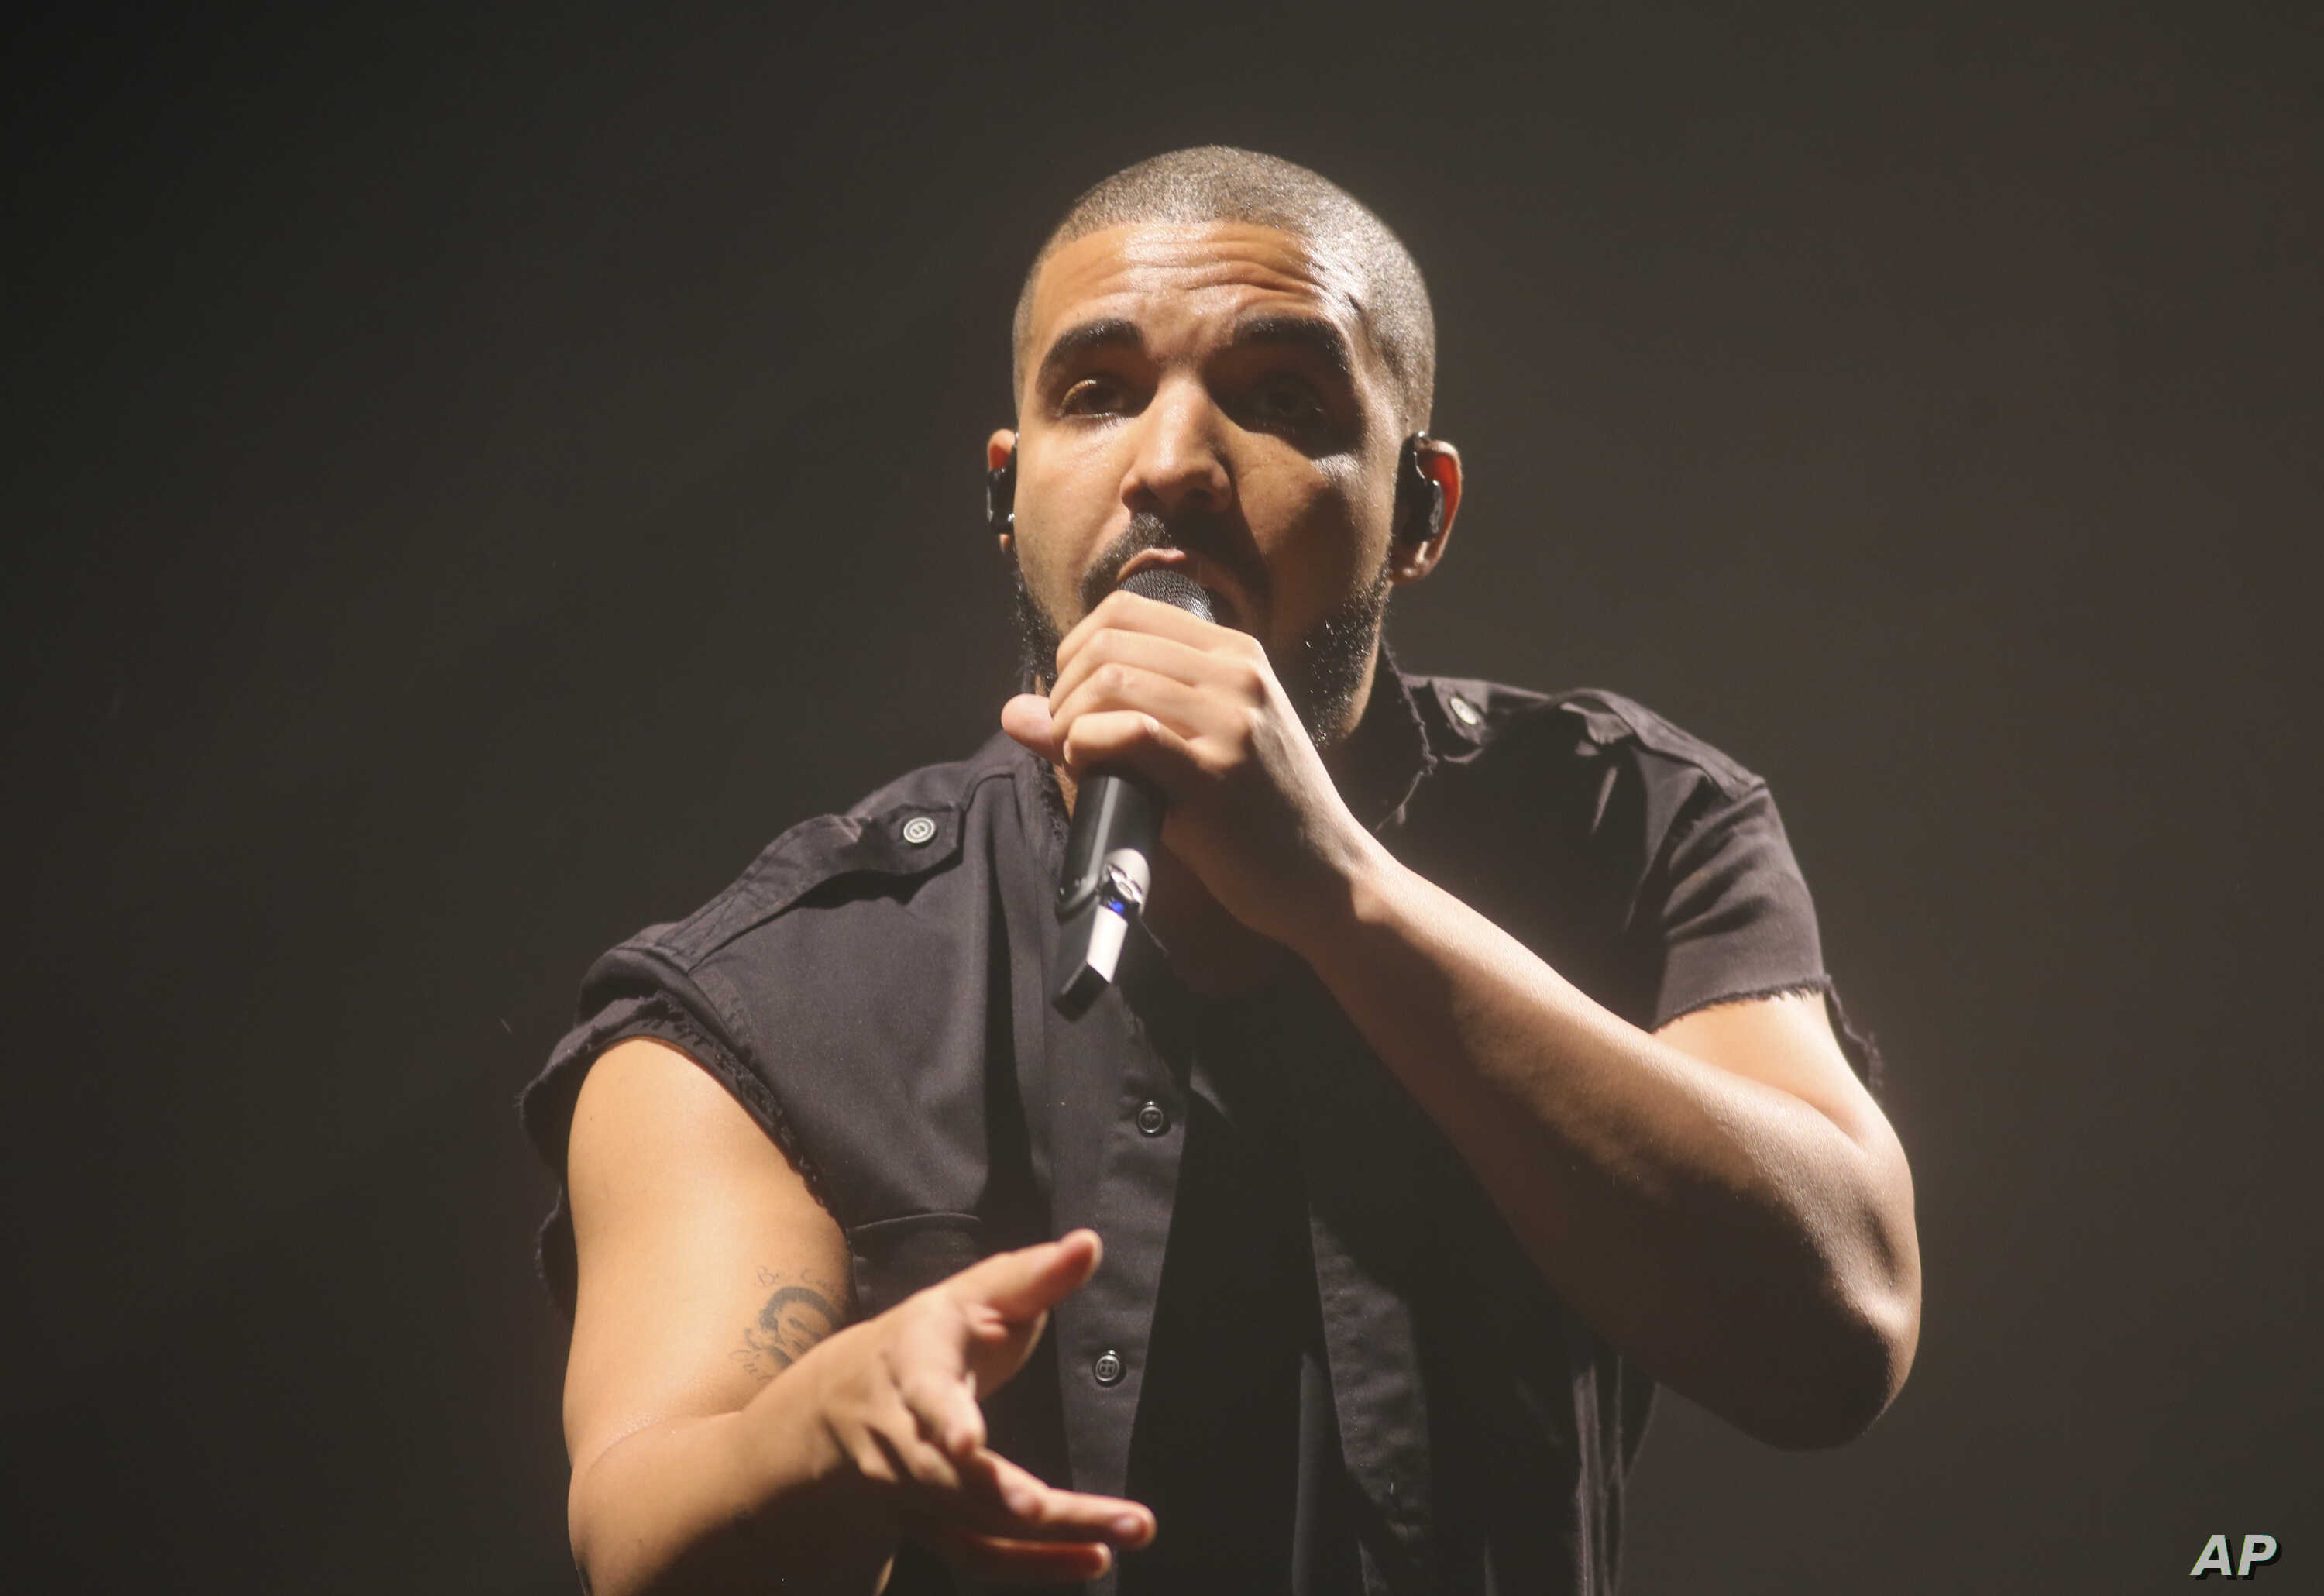 Drake performs at the Austin City Limits Music Festival in Zilker Park on Oct. 10, 2015, in Austin, Texas.